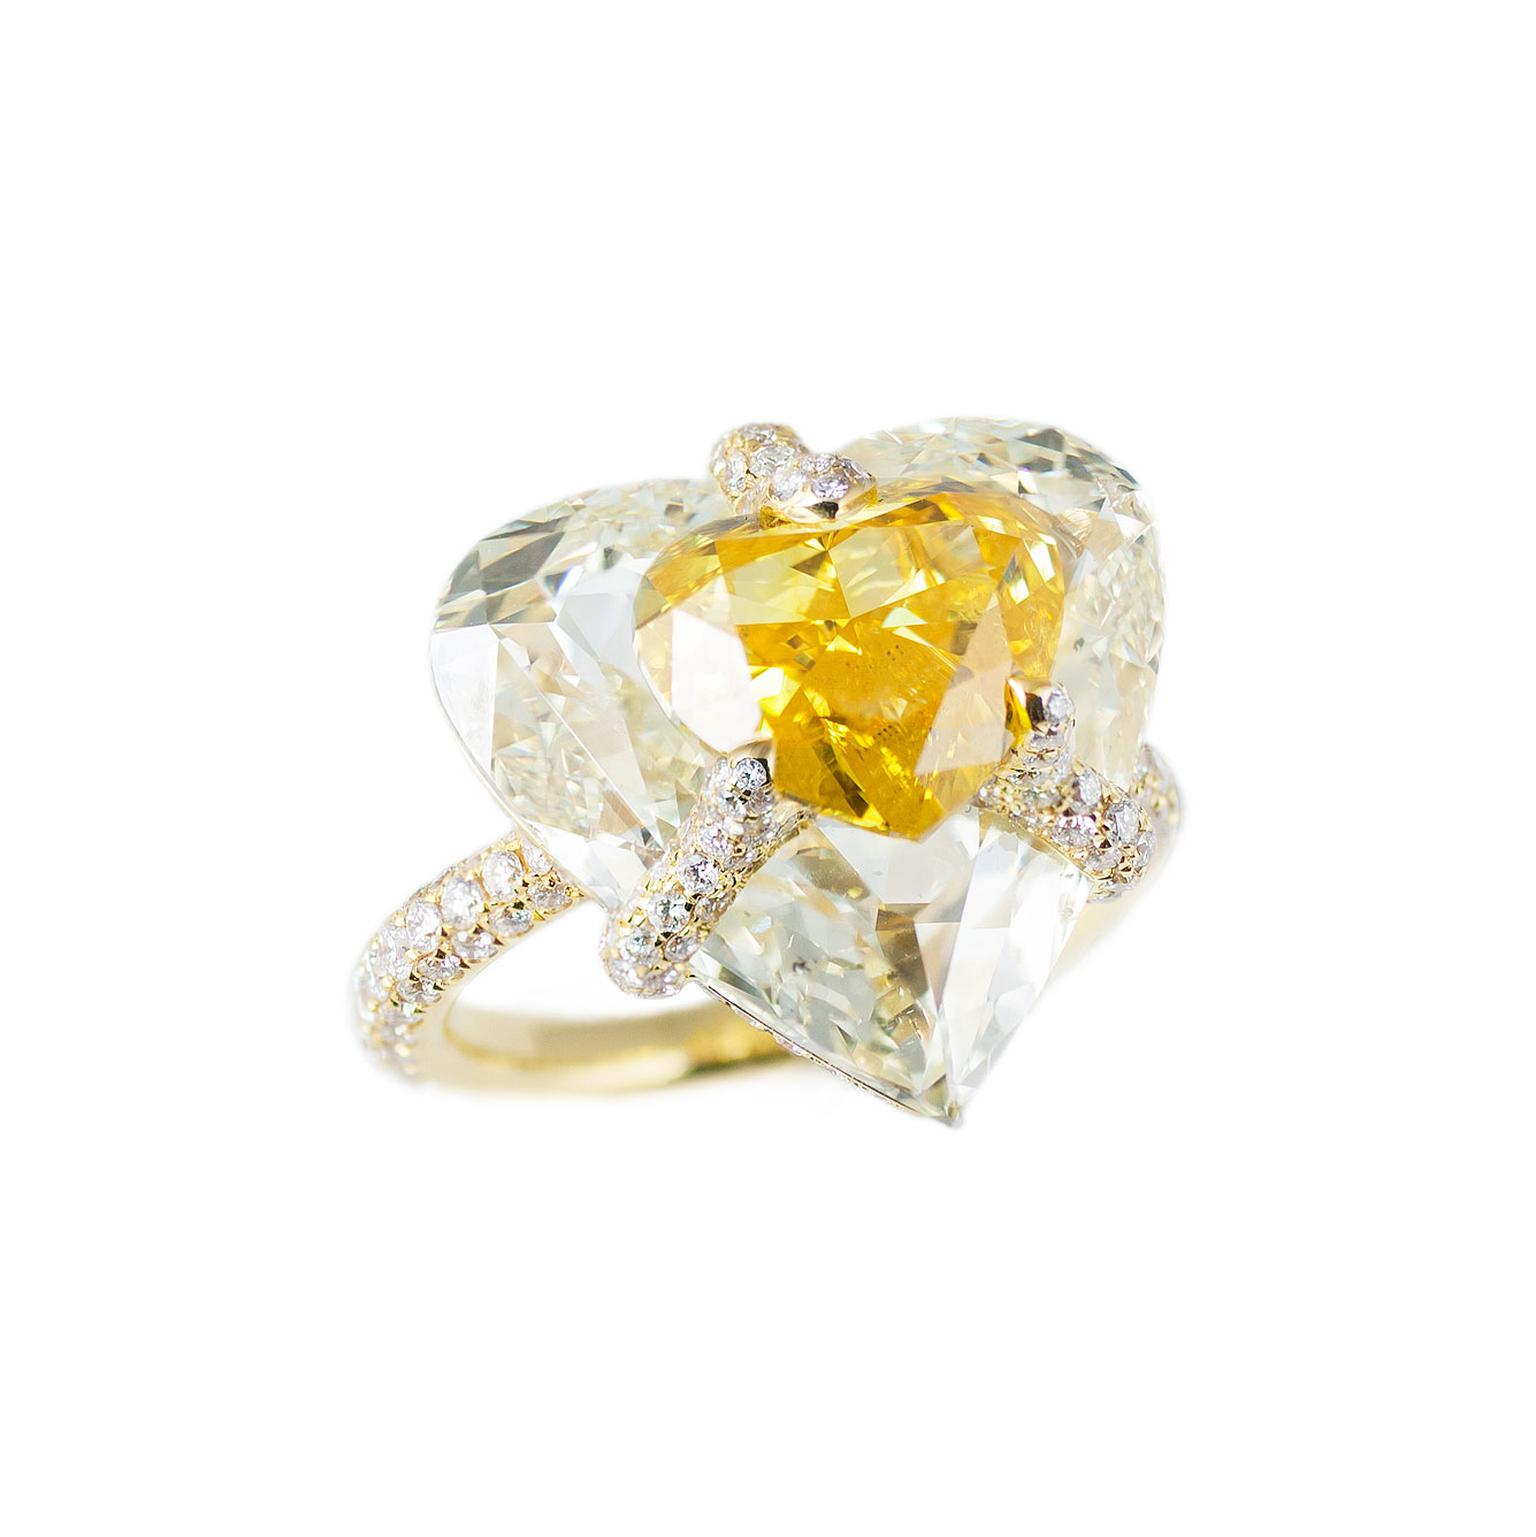 Boghossian Kissing Diamond Fancy vivid orangy yellow diamond and light yellow diamond ring